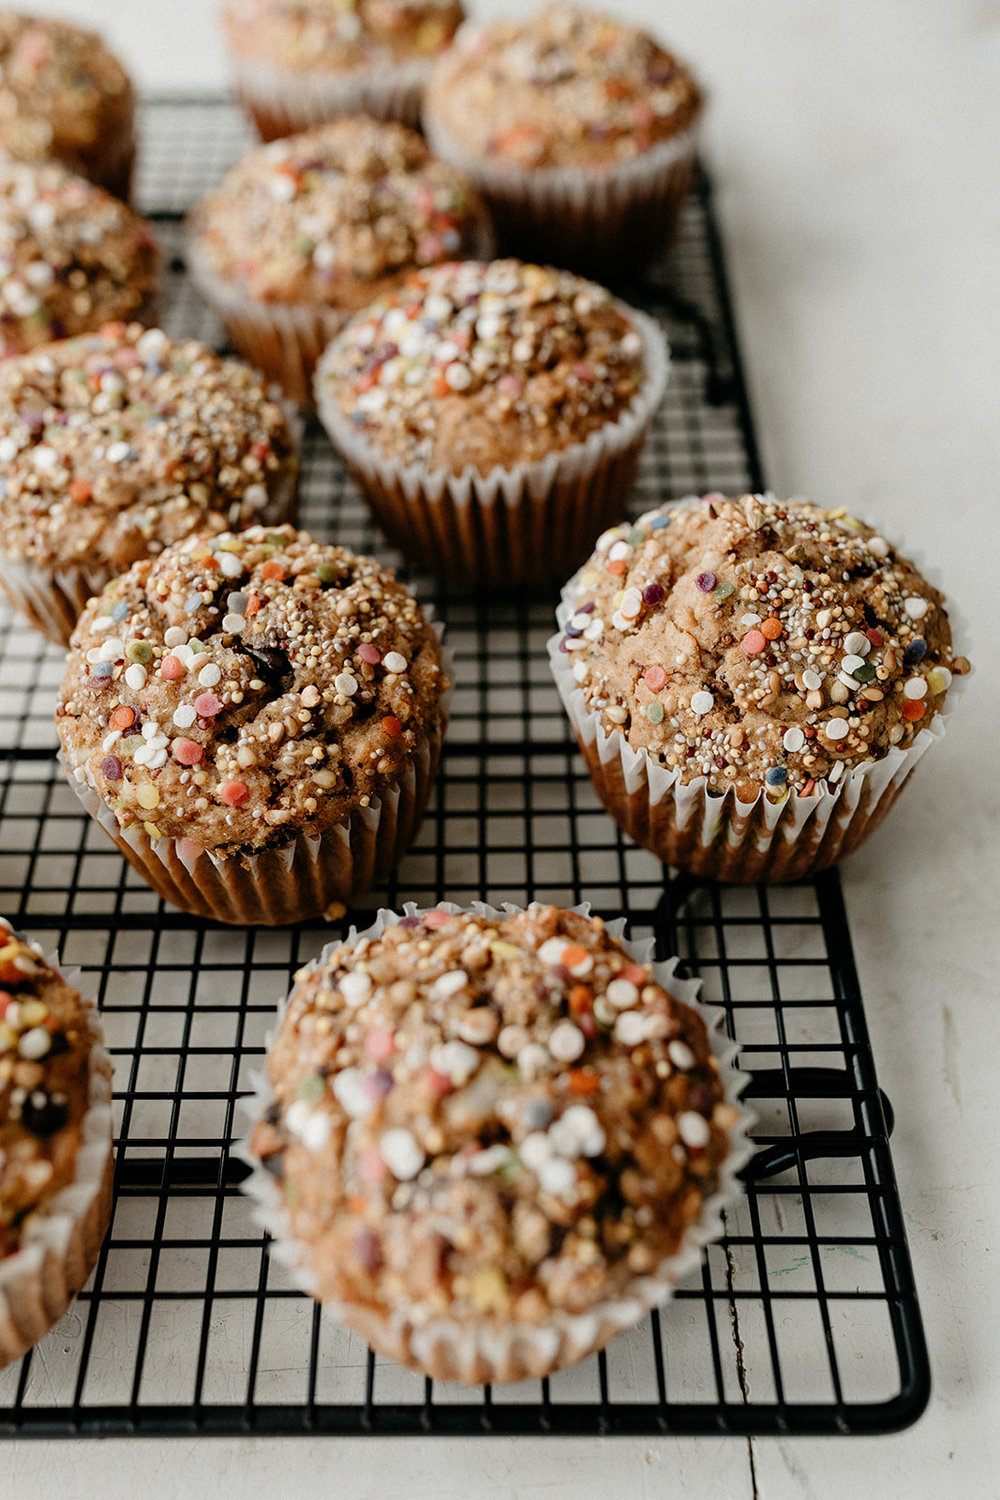 Chocolate Peanut Butter Oatmeal Muffins - Molly Yeh